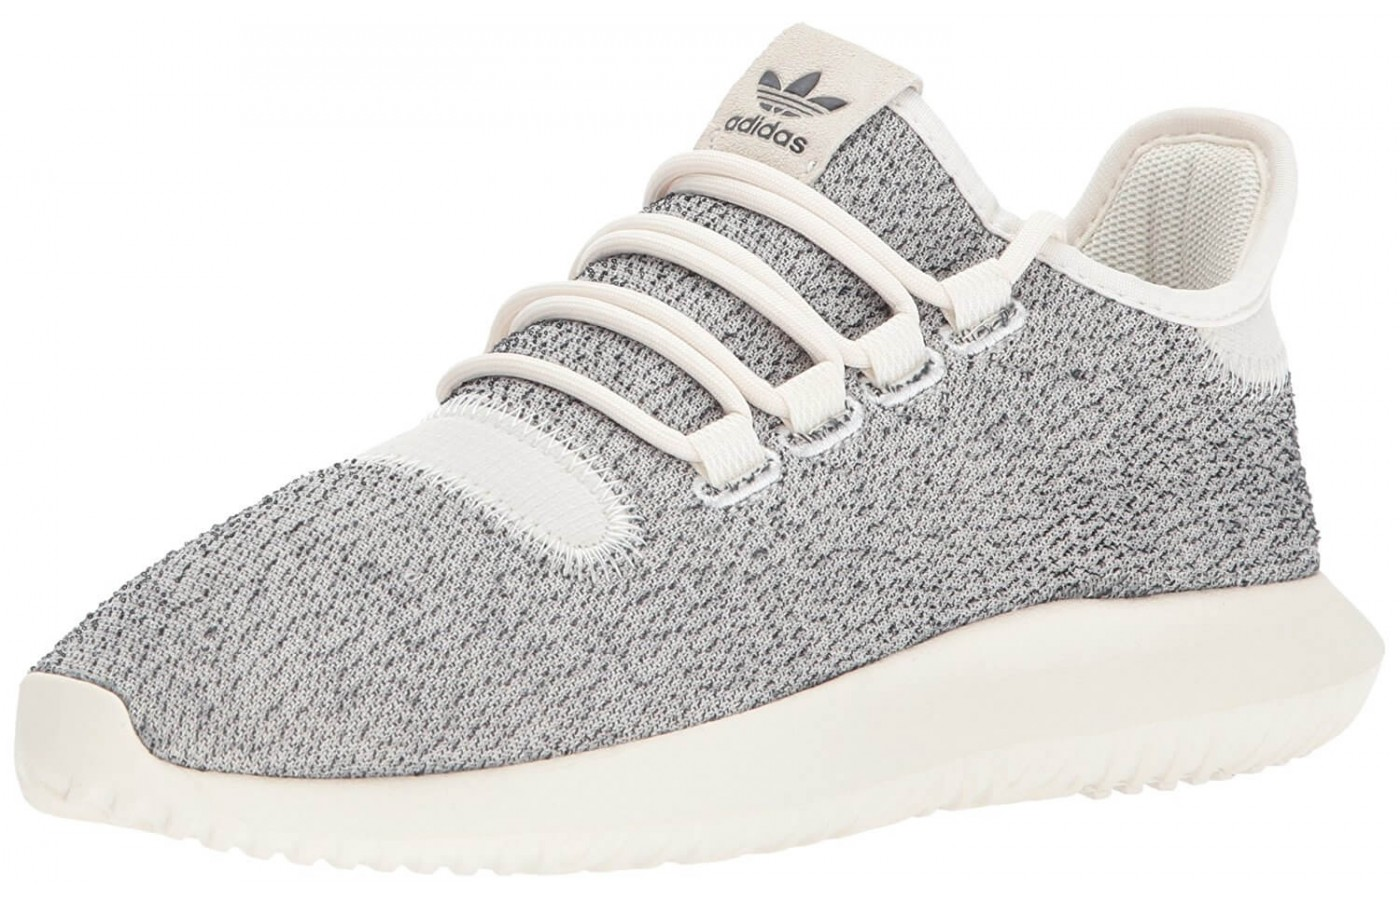 sports shoes 8d2fa 345fc Adidas Tubular Shadow